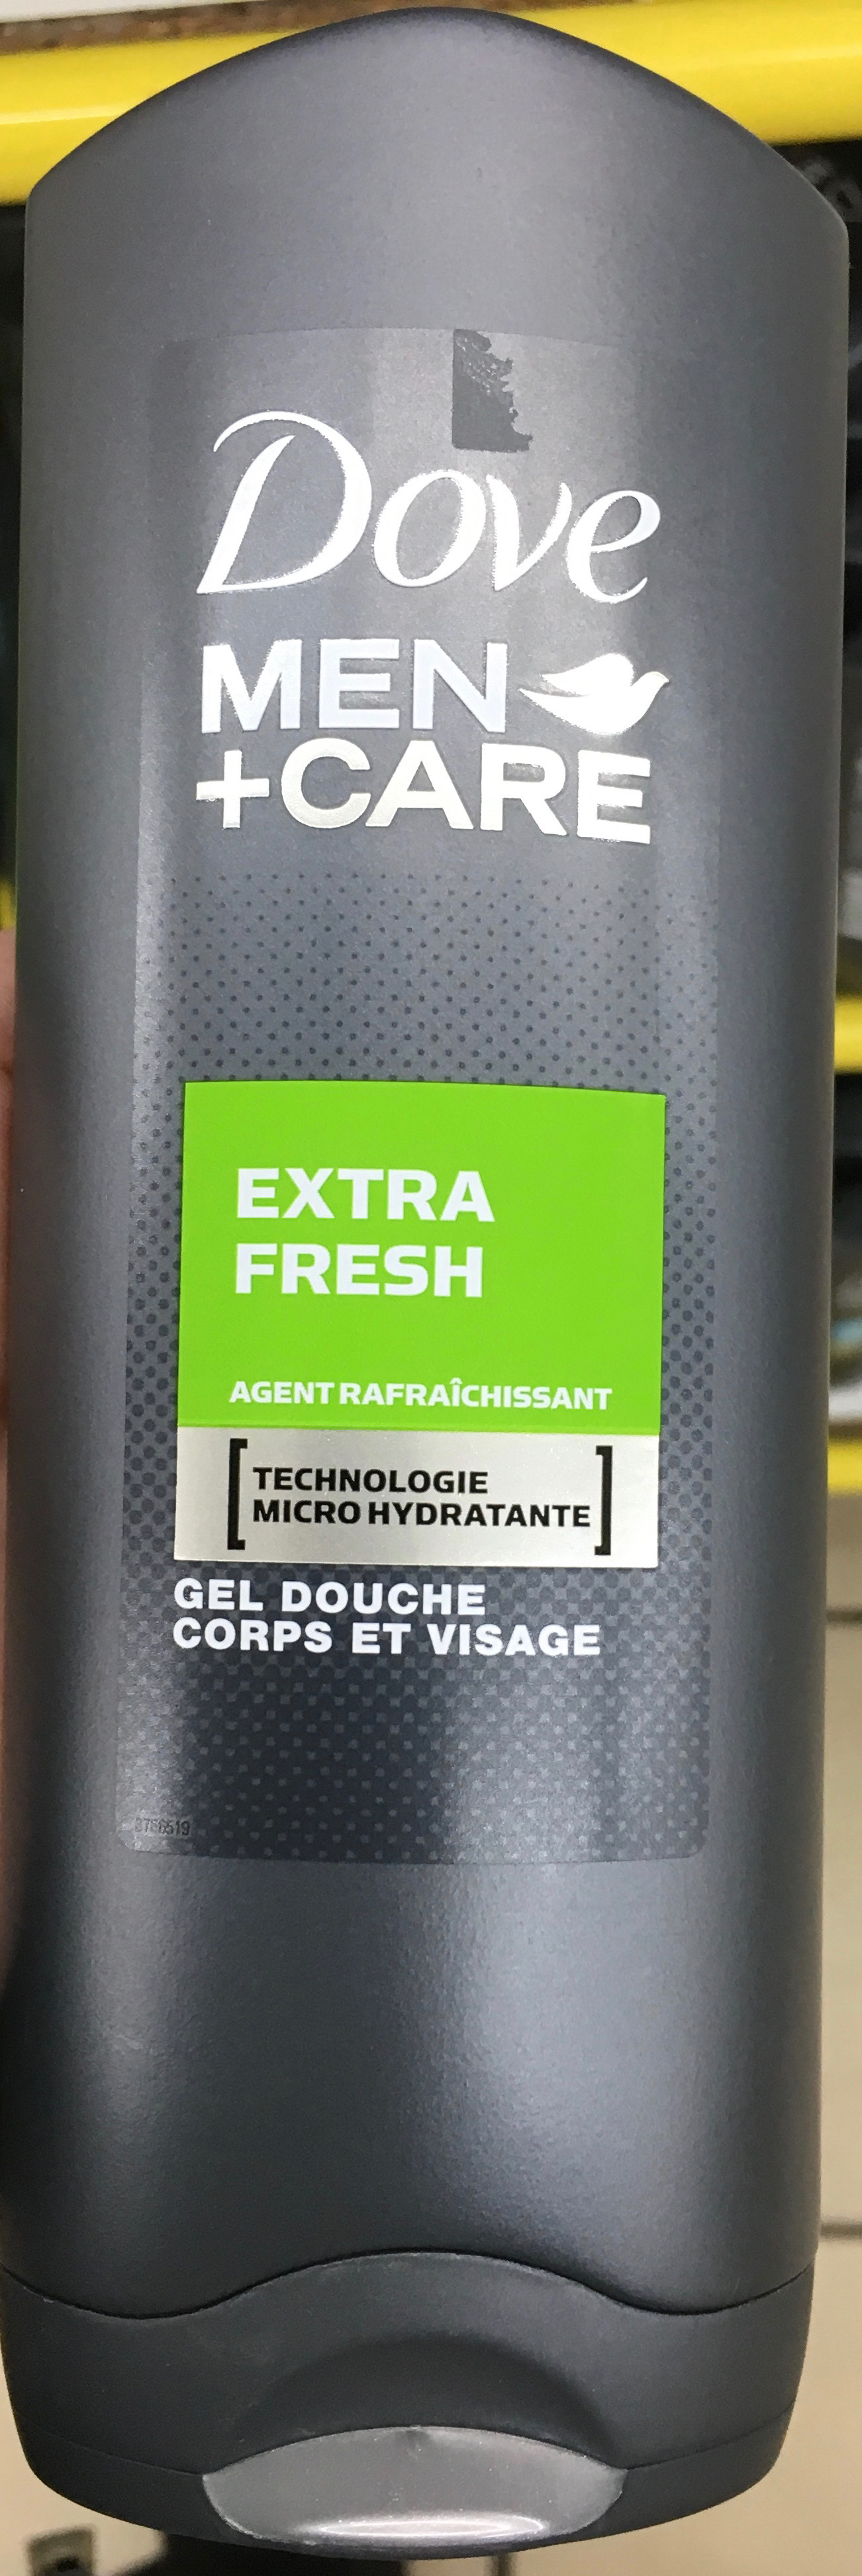 Men + Care Extra Fresh - Product